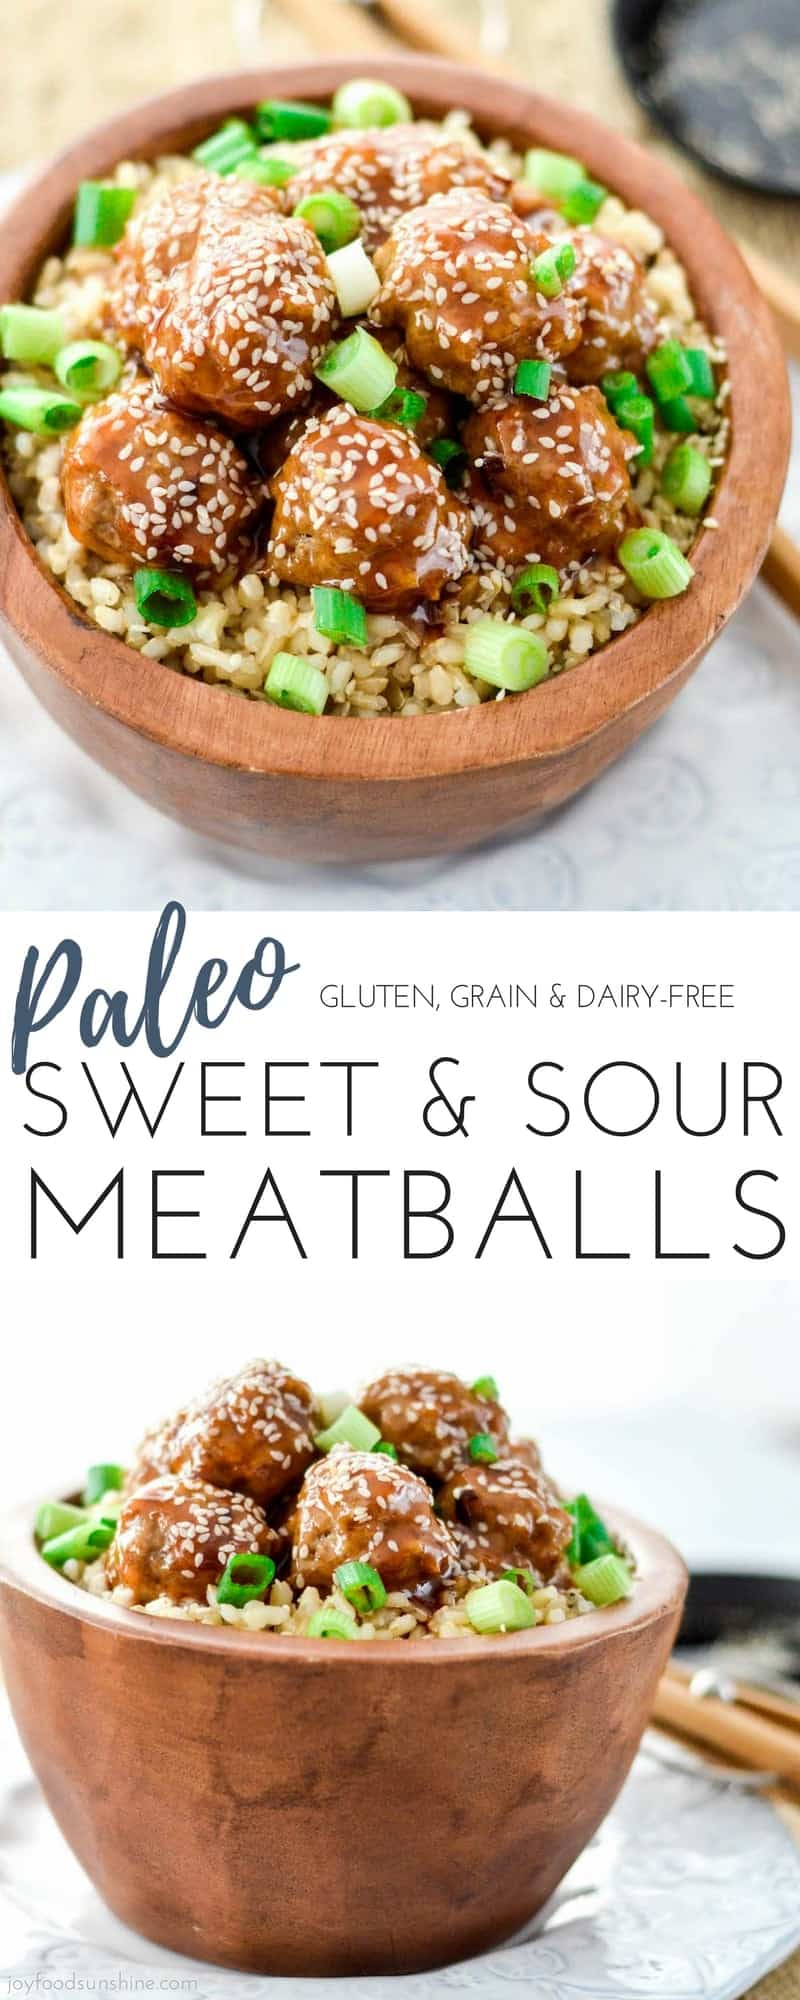 Paleo Sweet and Sour Meatballs! The perfect healthy, quick & easy weeknight recipe that everyone in your family will love! #paleo #meatballs #dinner #recipe #glutenfree #dairyfree #grainfree